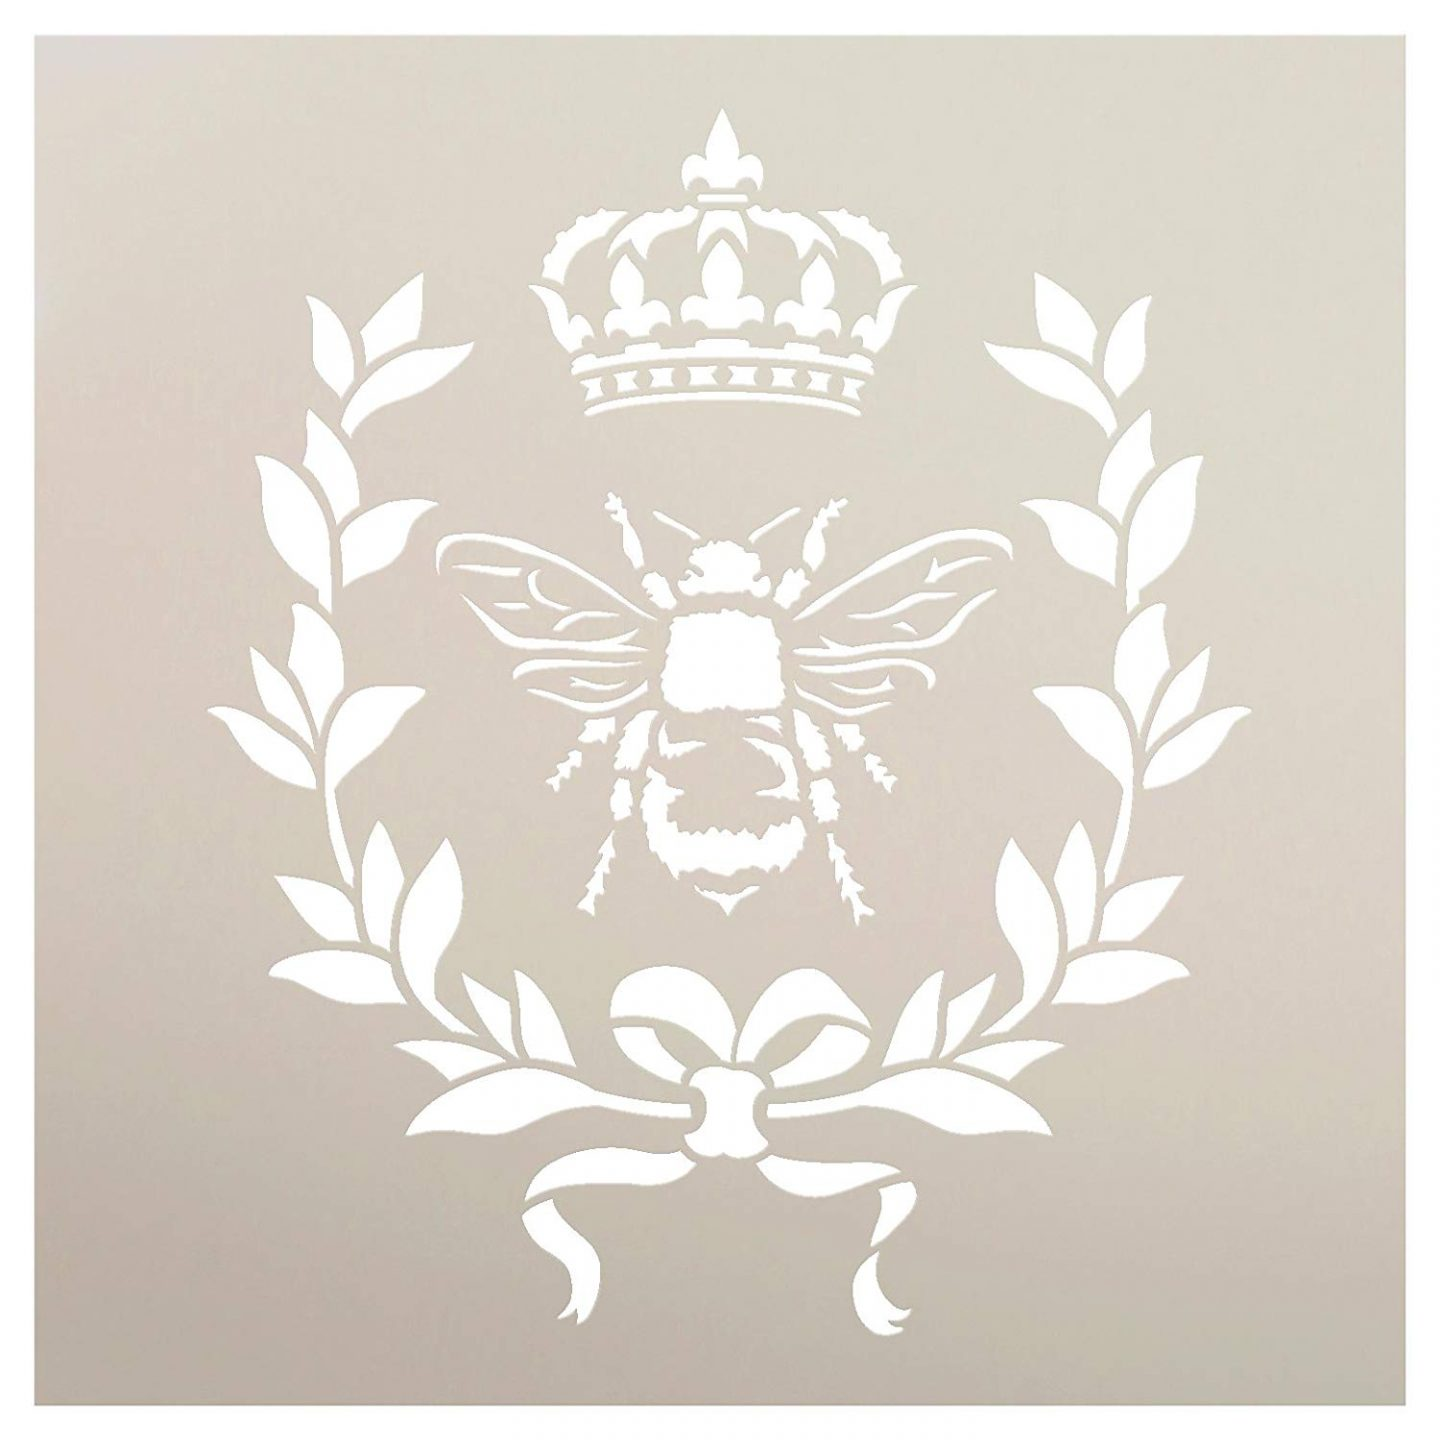 French country stencil with French bee, crown, and garland. French Country Furniture Finds. Because European country and French farmhouse style is easy to love. Rustic elegant charm is lovely indeed.